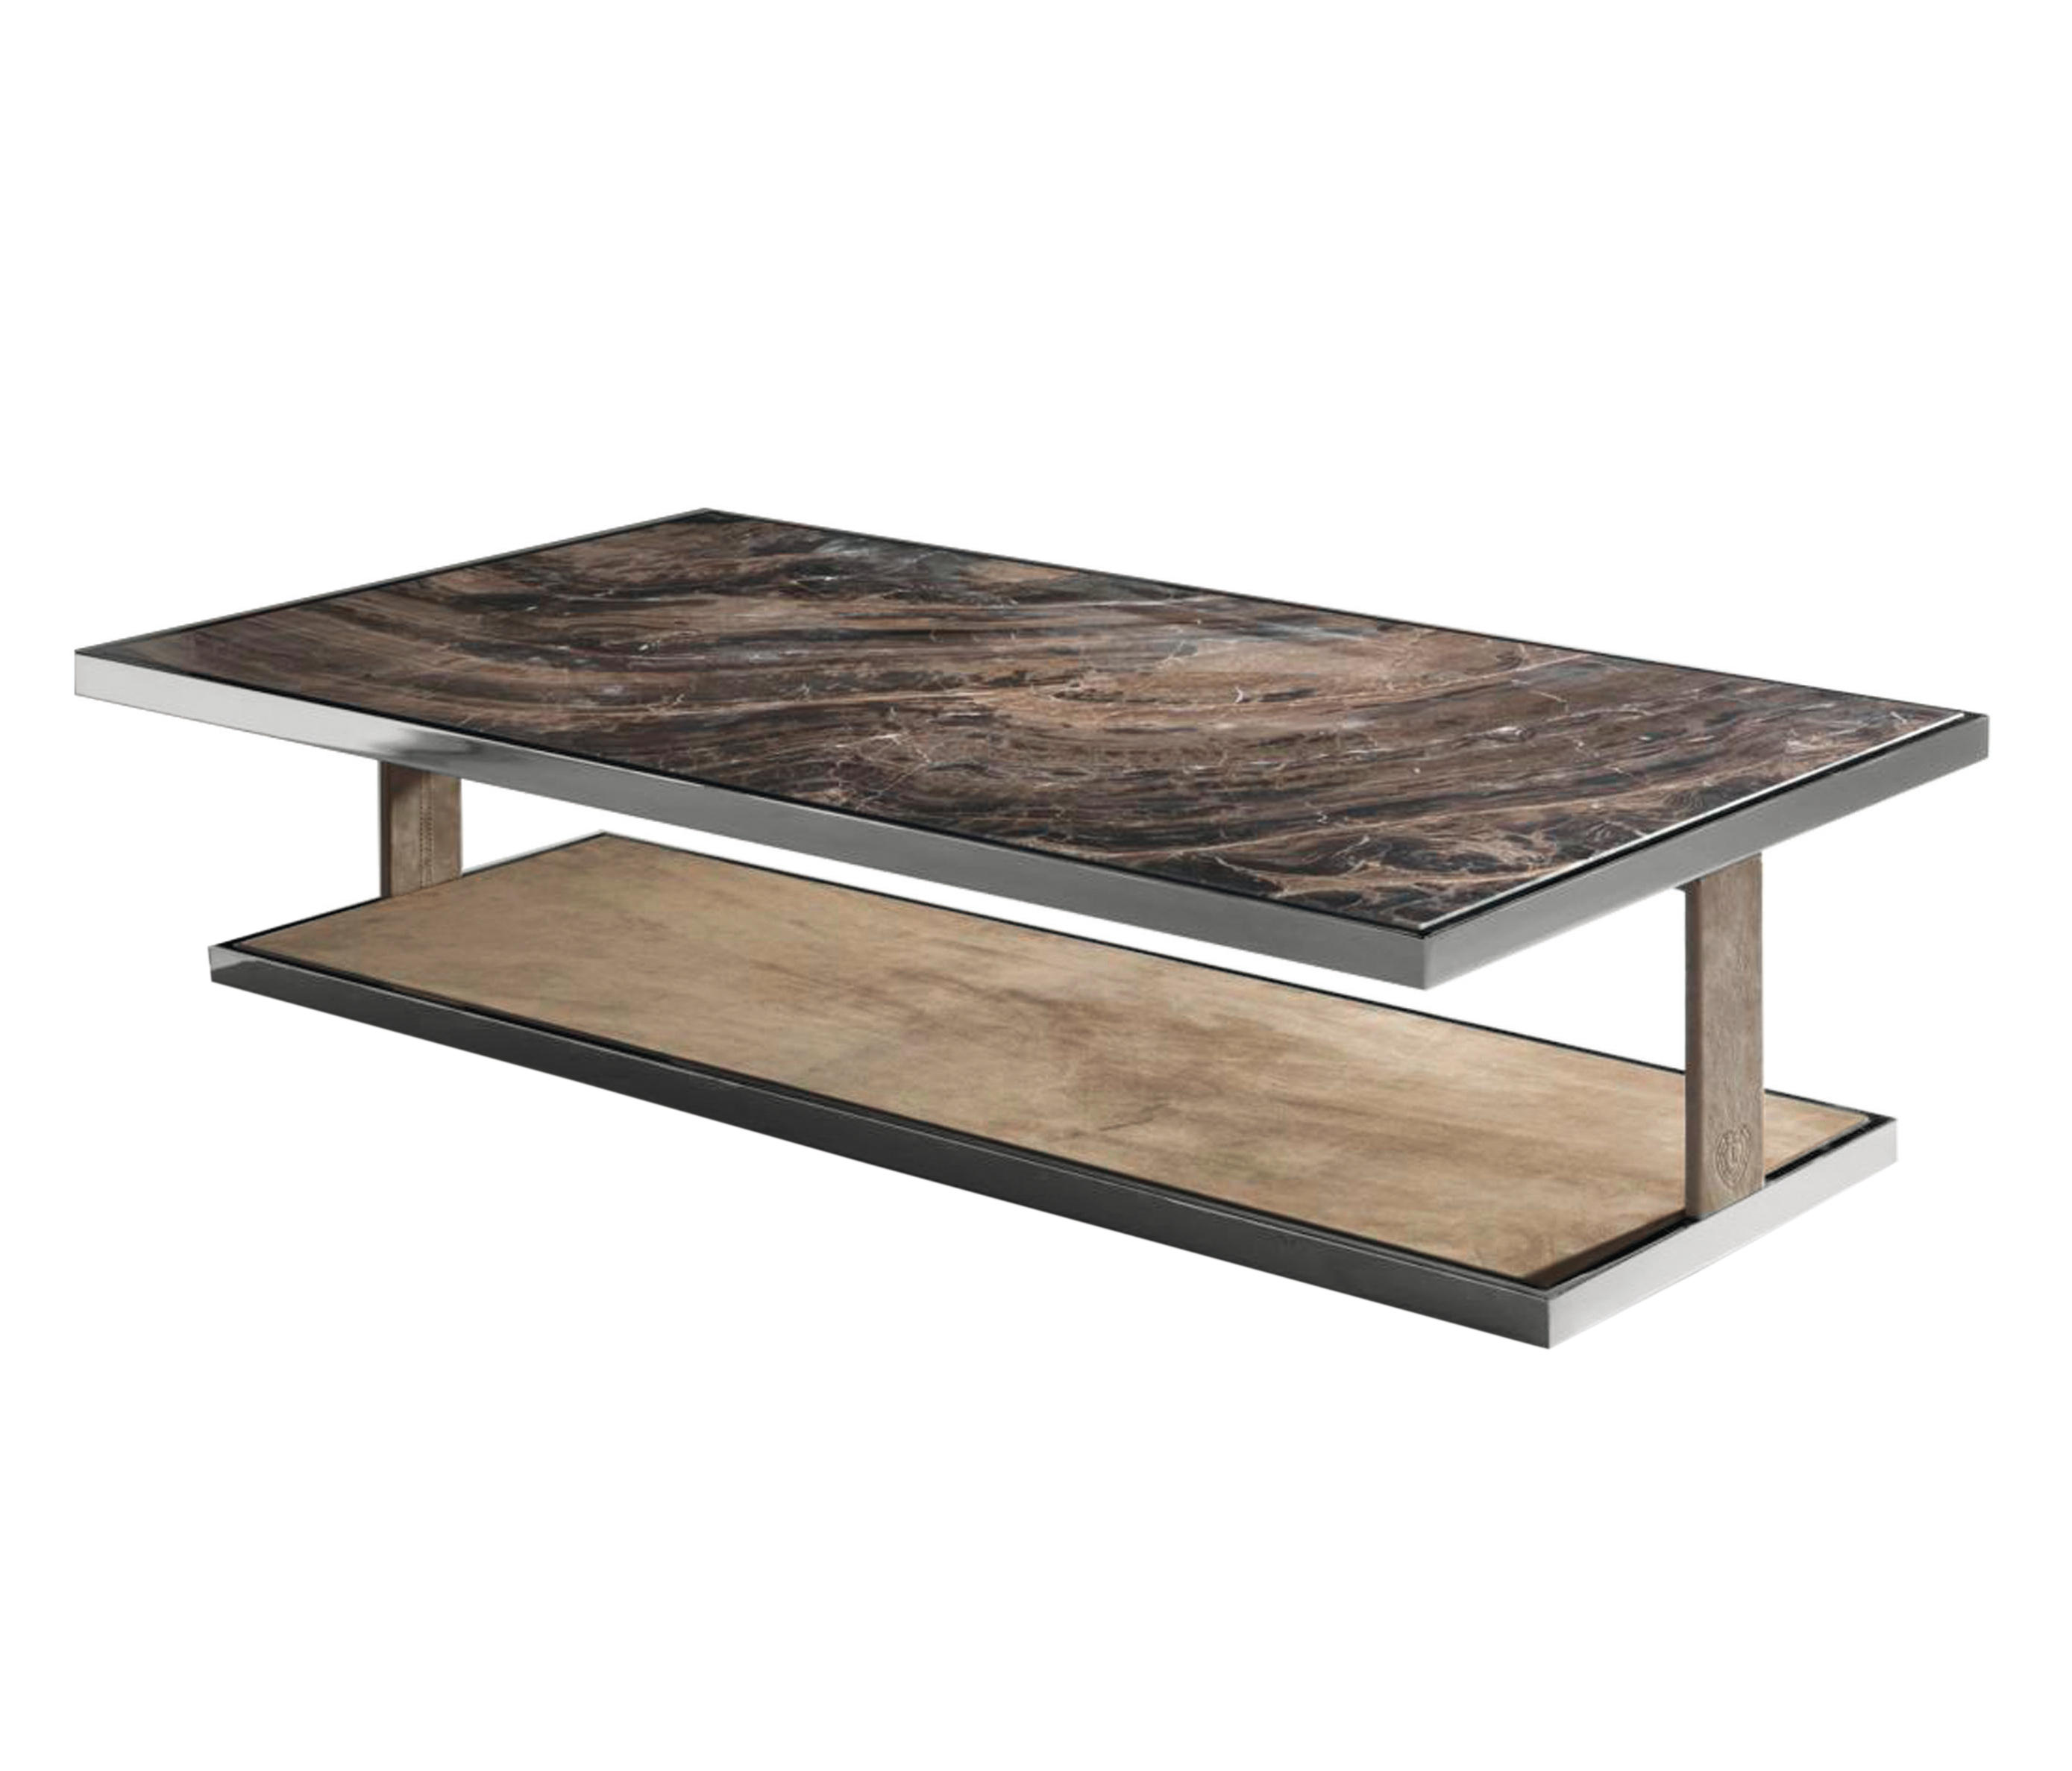 LAYER Coffee tables from Longhi S p a